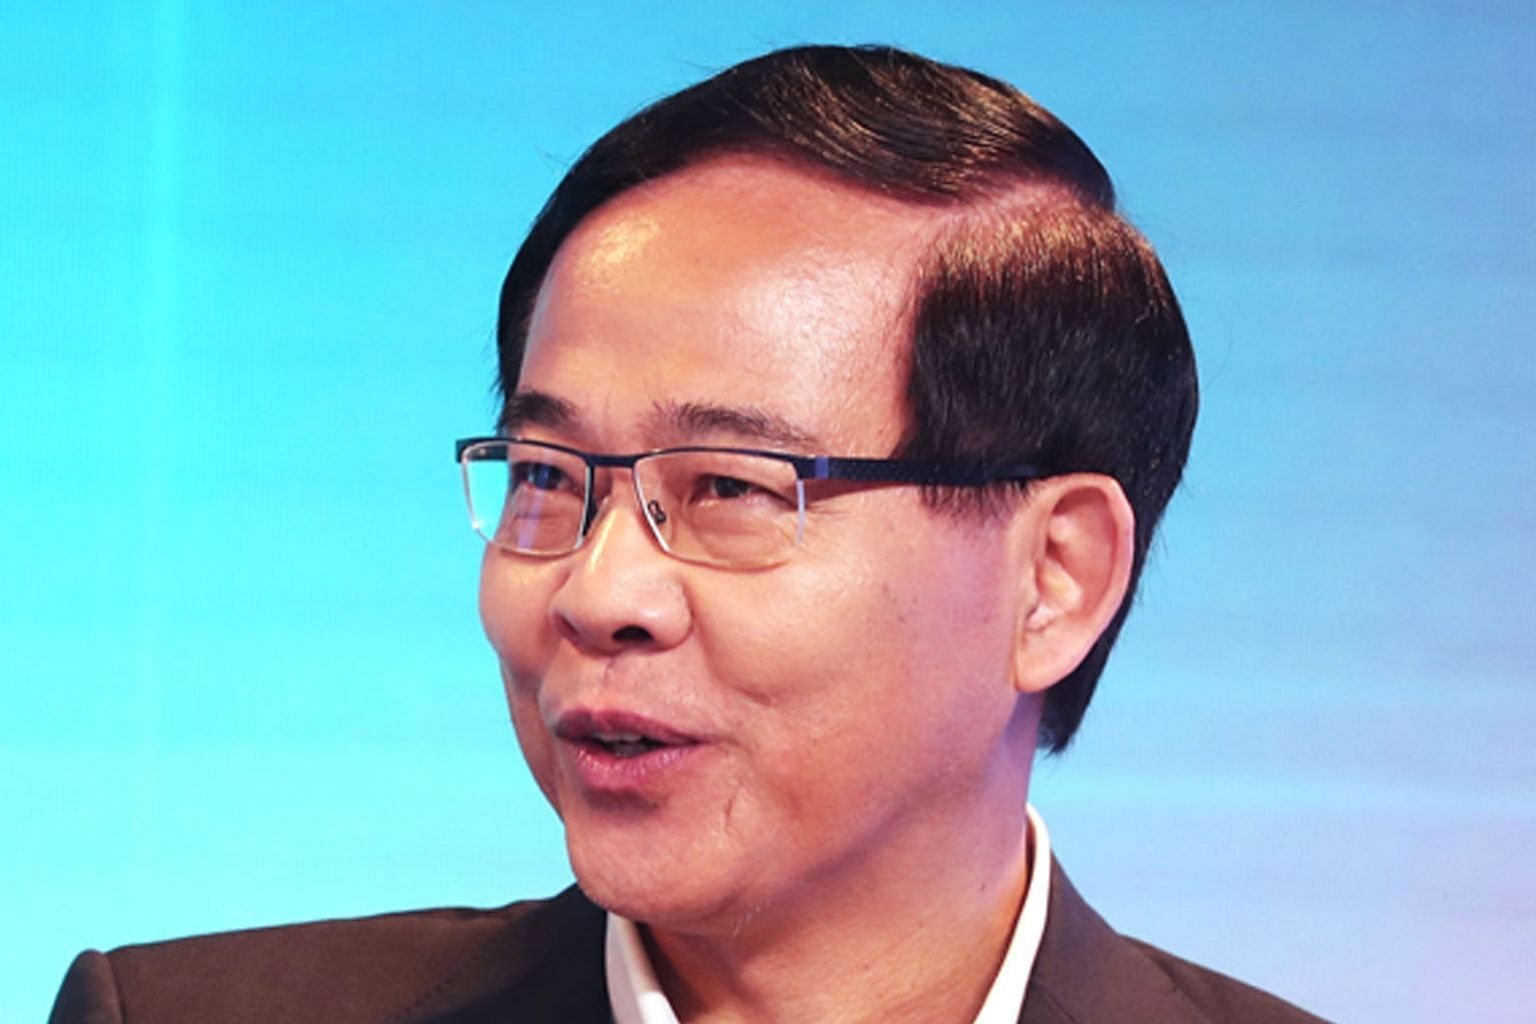 Duke-NUS Medical School's Professor Wang Linfa says the test can help determine the efficacy of vaccines.